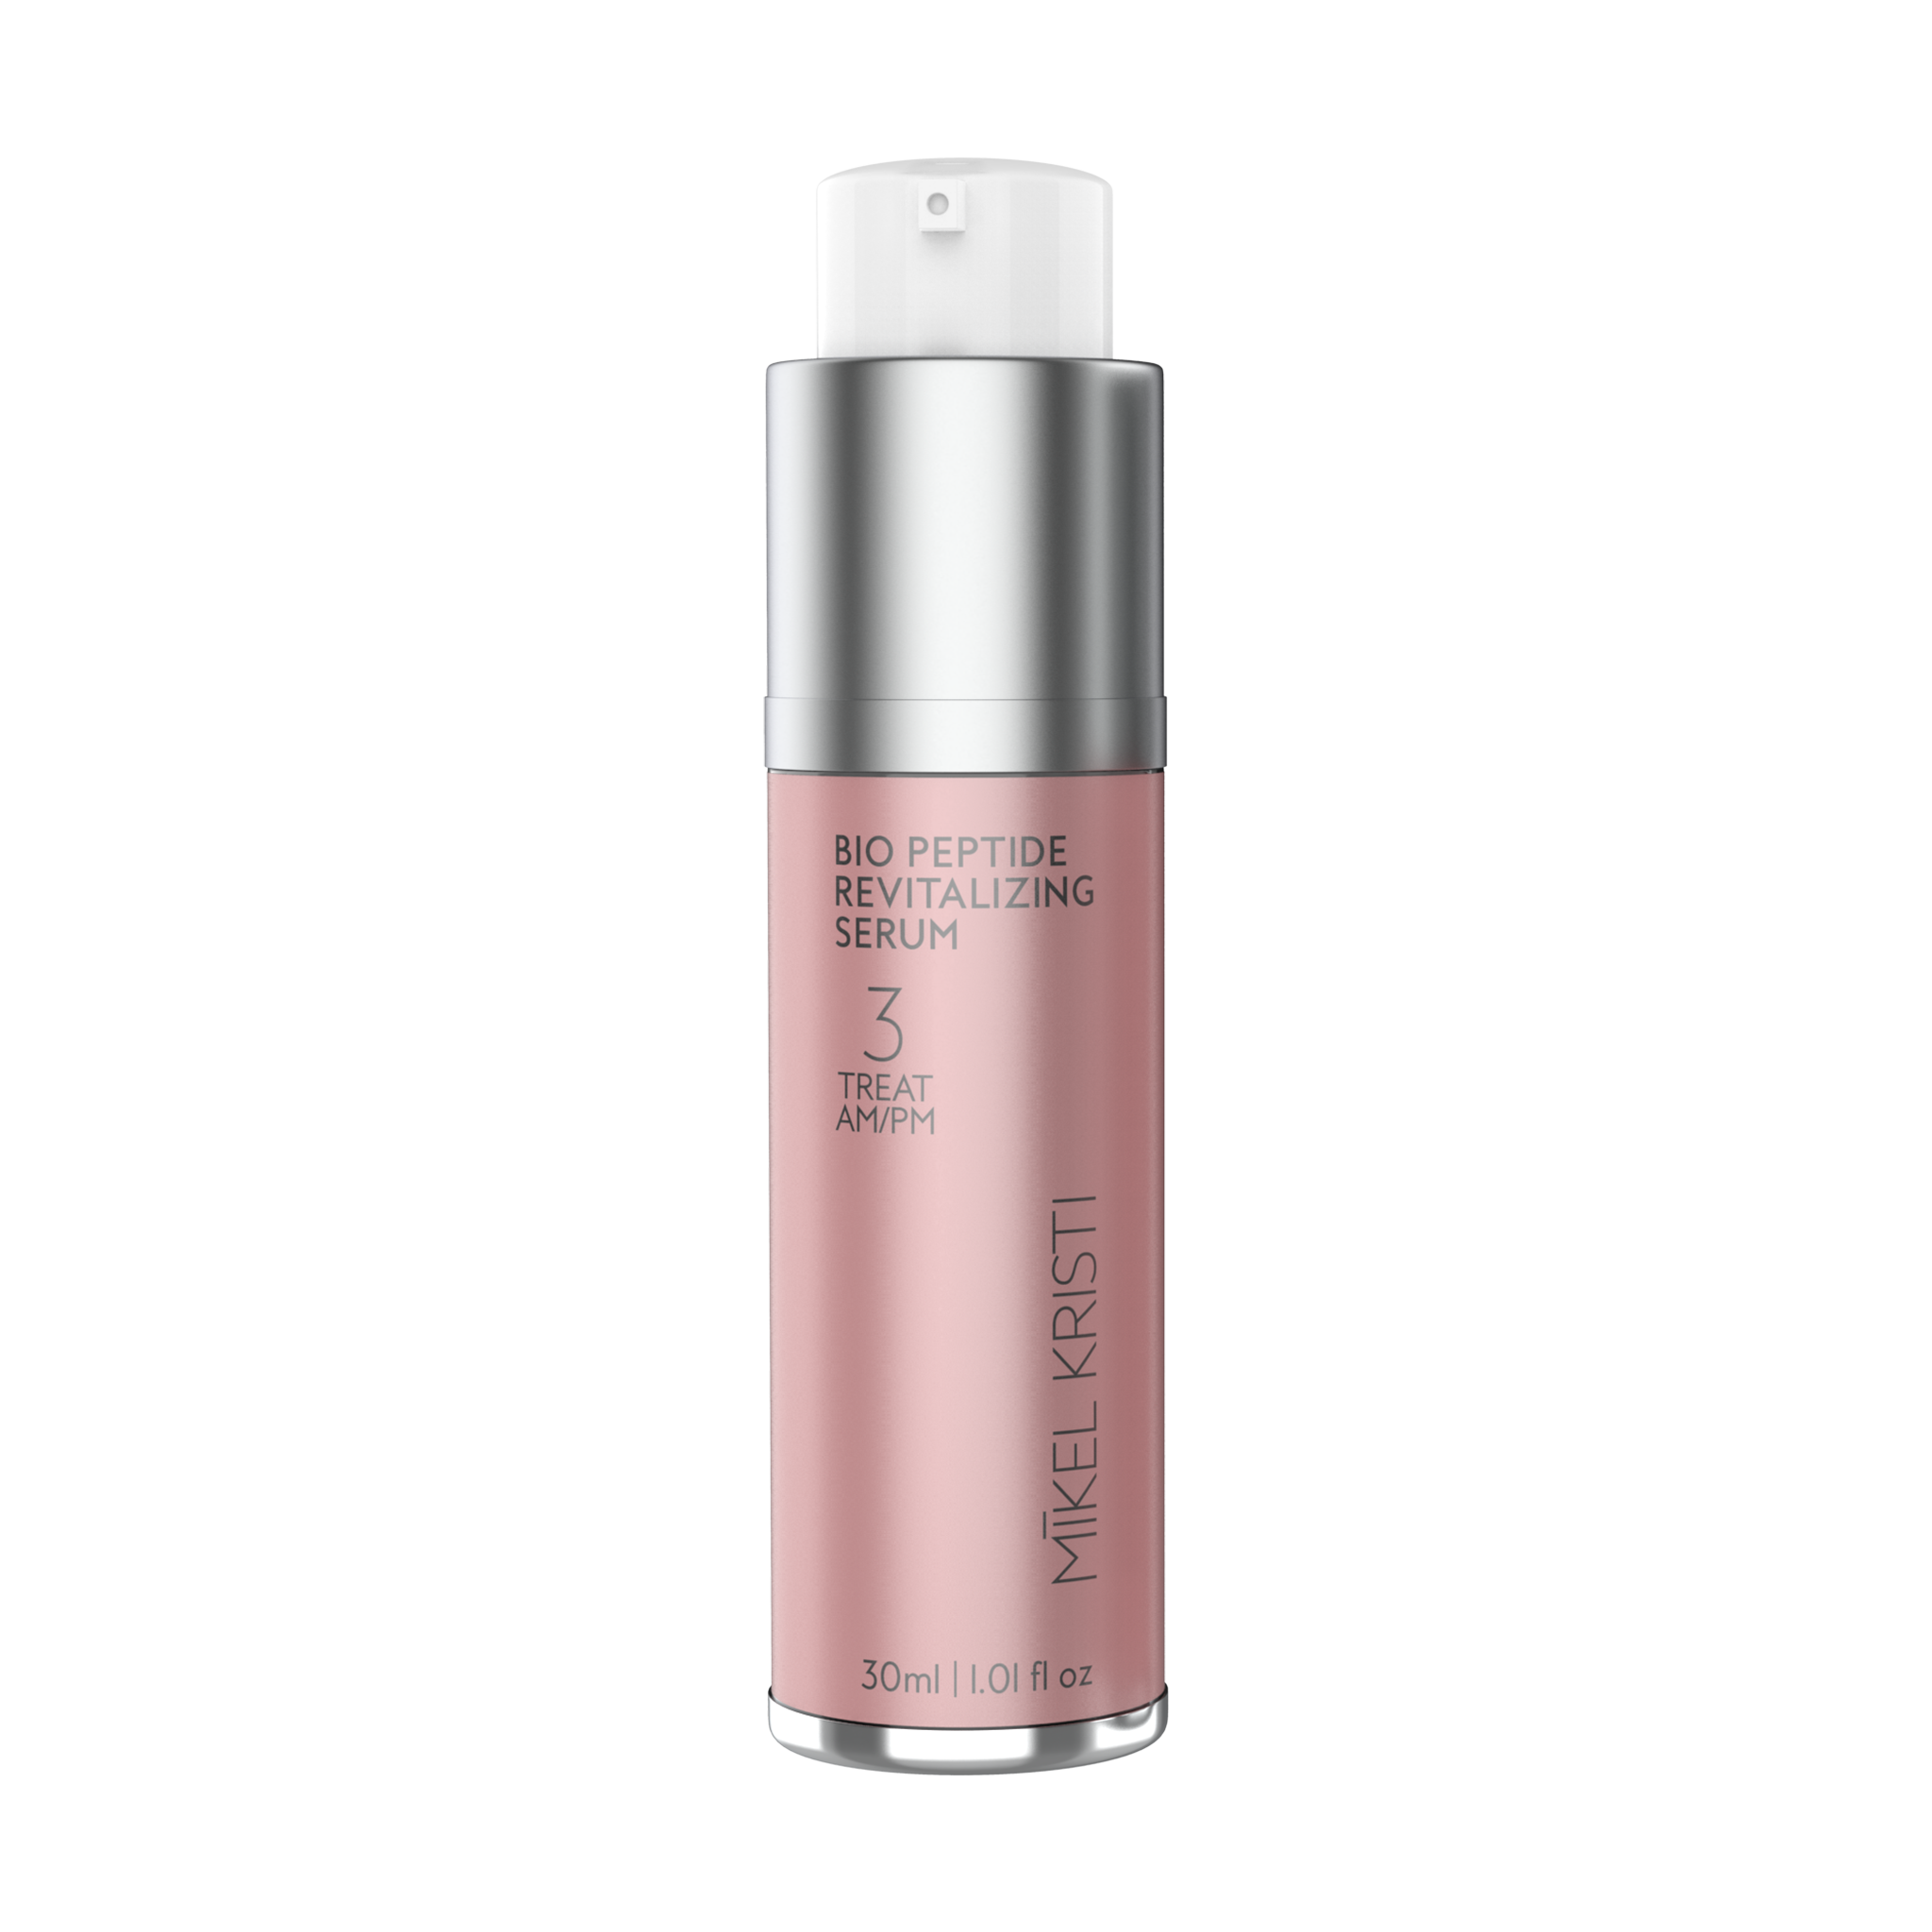 Bio Peptide Revitalizing Serum